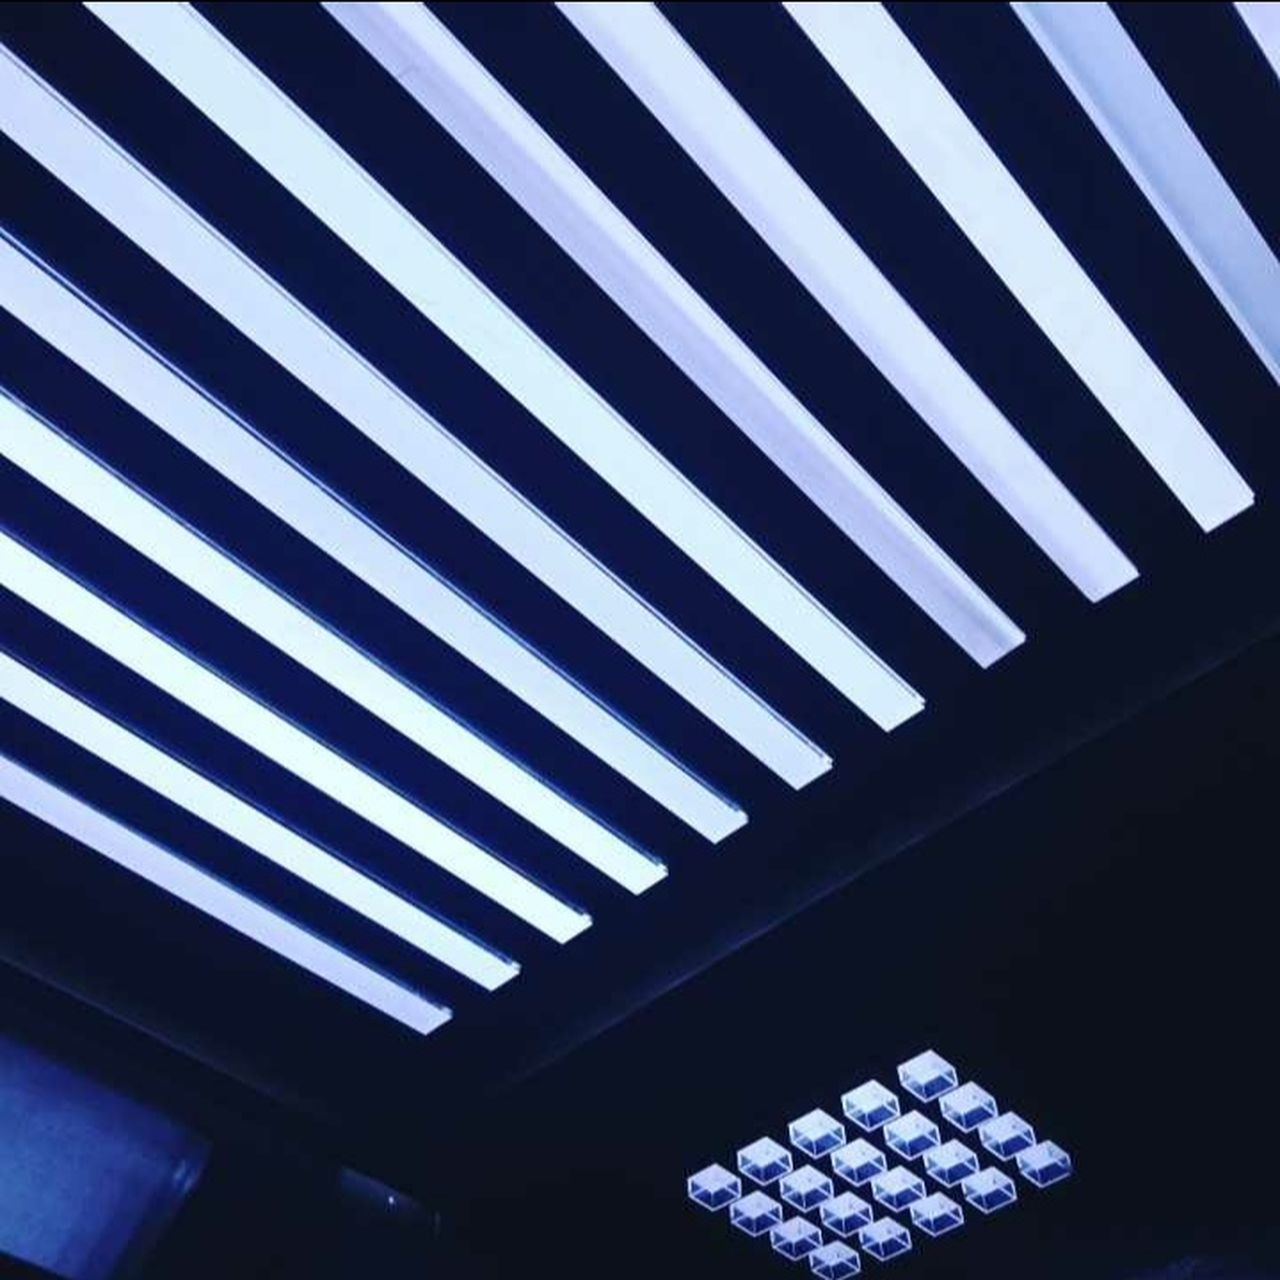 striped, indoors, pattern, technology, no people, day, architecture, close-up